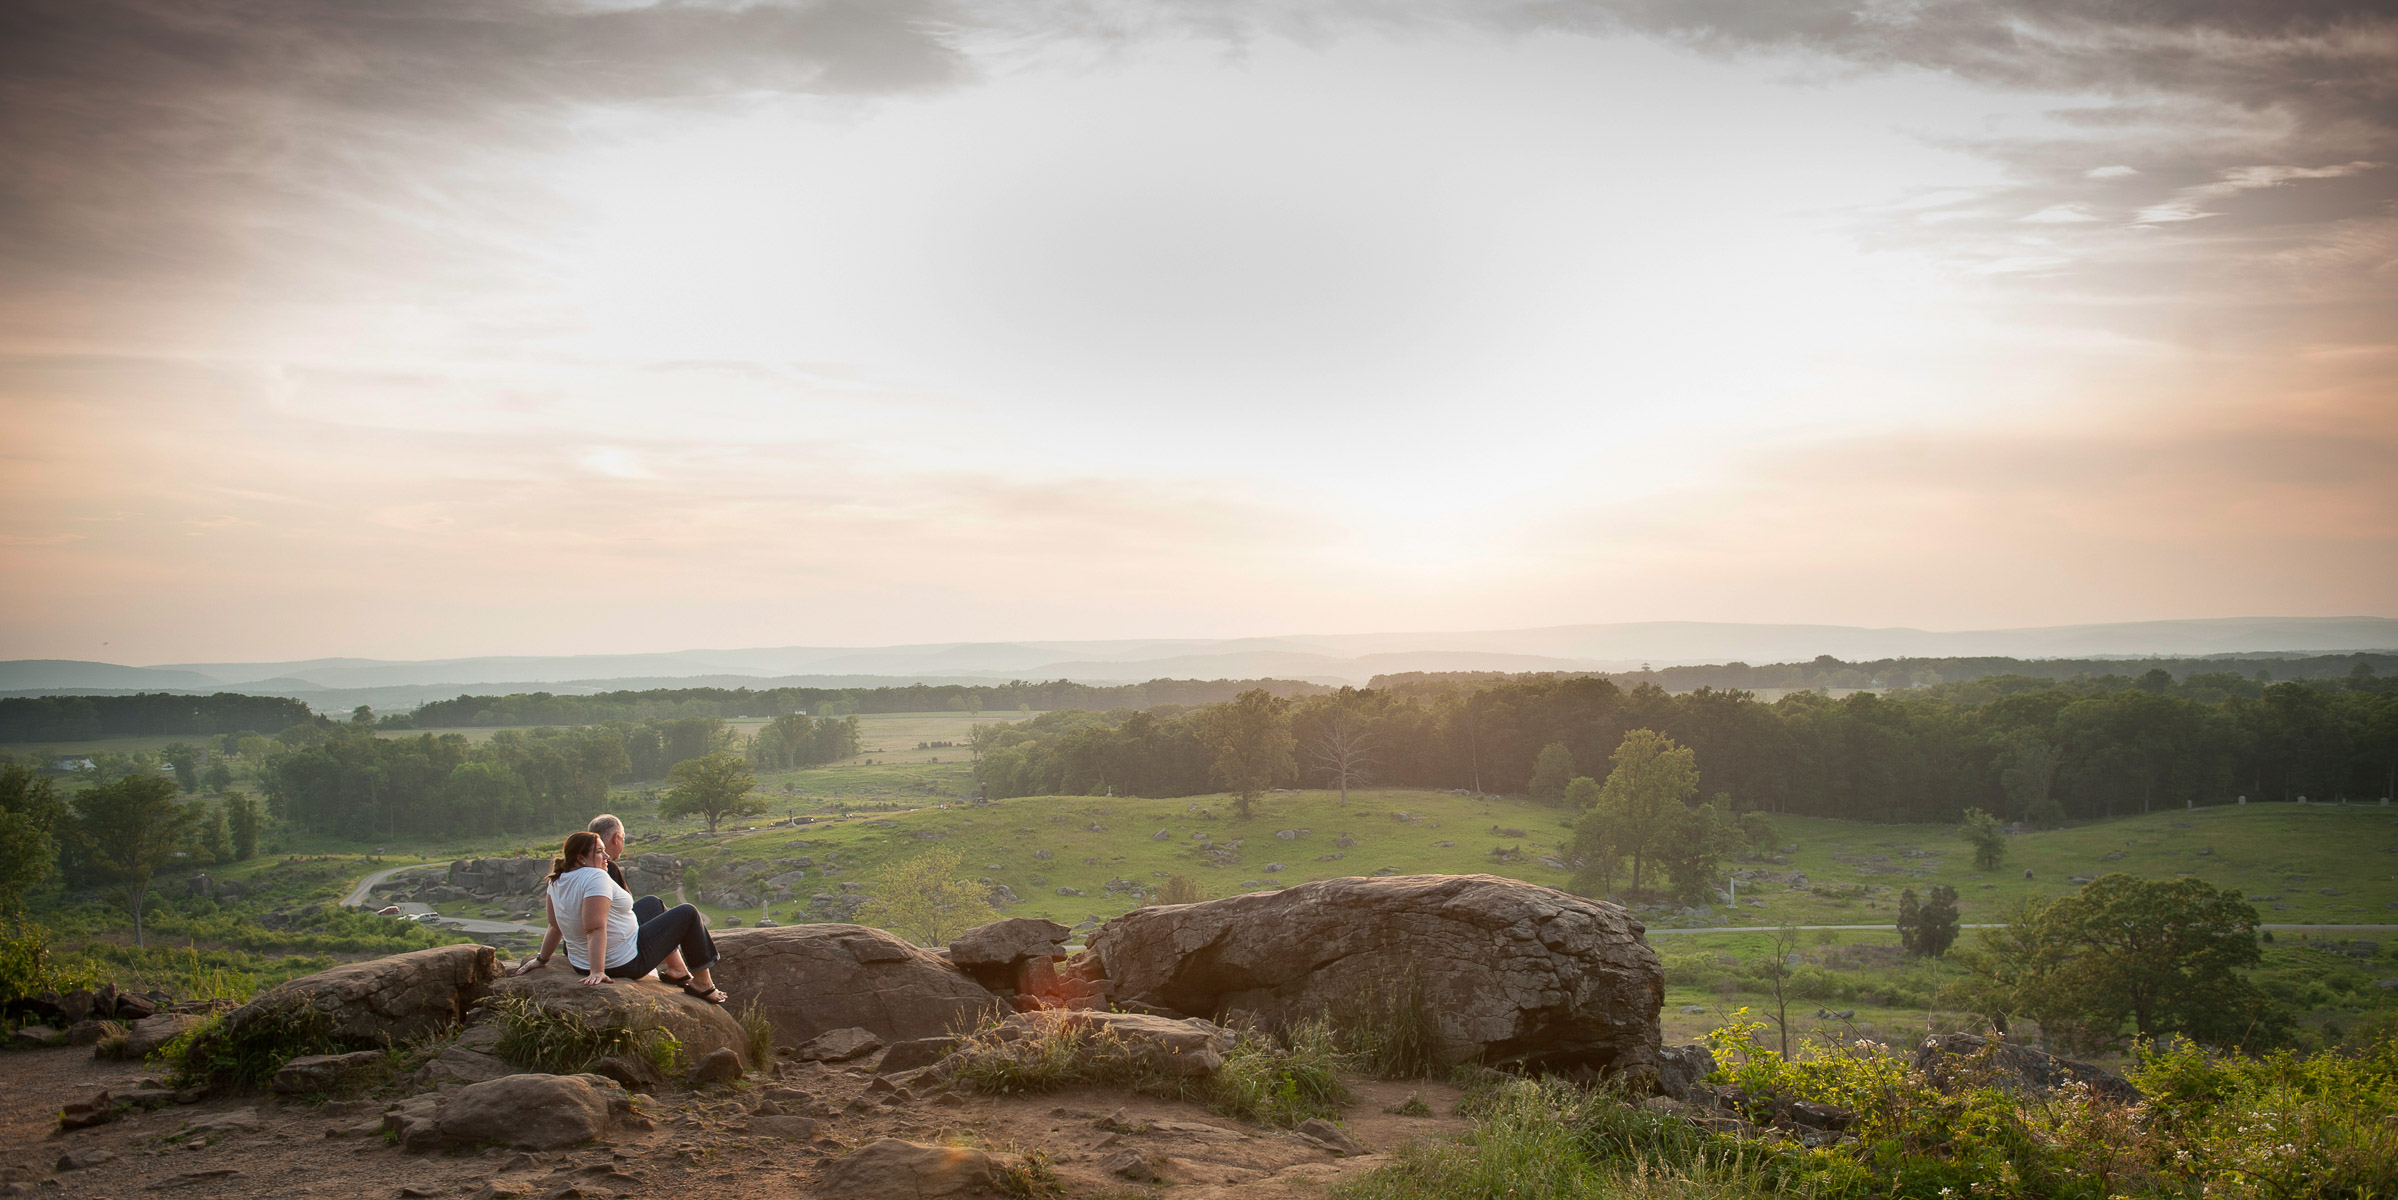 Visitors enjoy the sunset at Little Round Top one of the most scenic sites on the 24-mile auto tour winding through the Gettysburg National Military Park in Pennsylvania. May 30, 2013. VANESSA VICK FOR THE NEW YORK TIMES